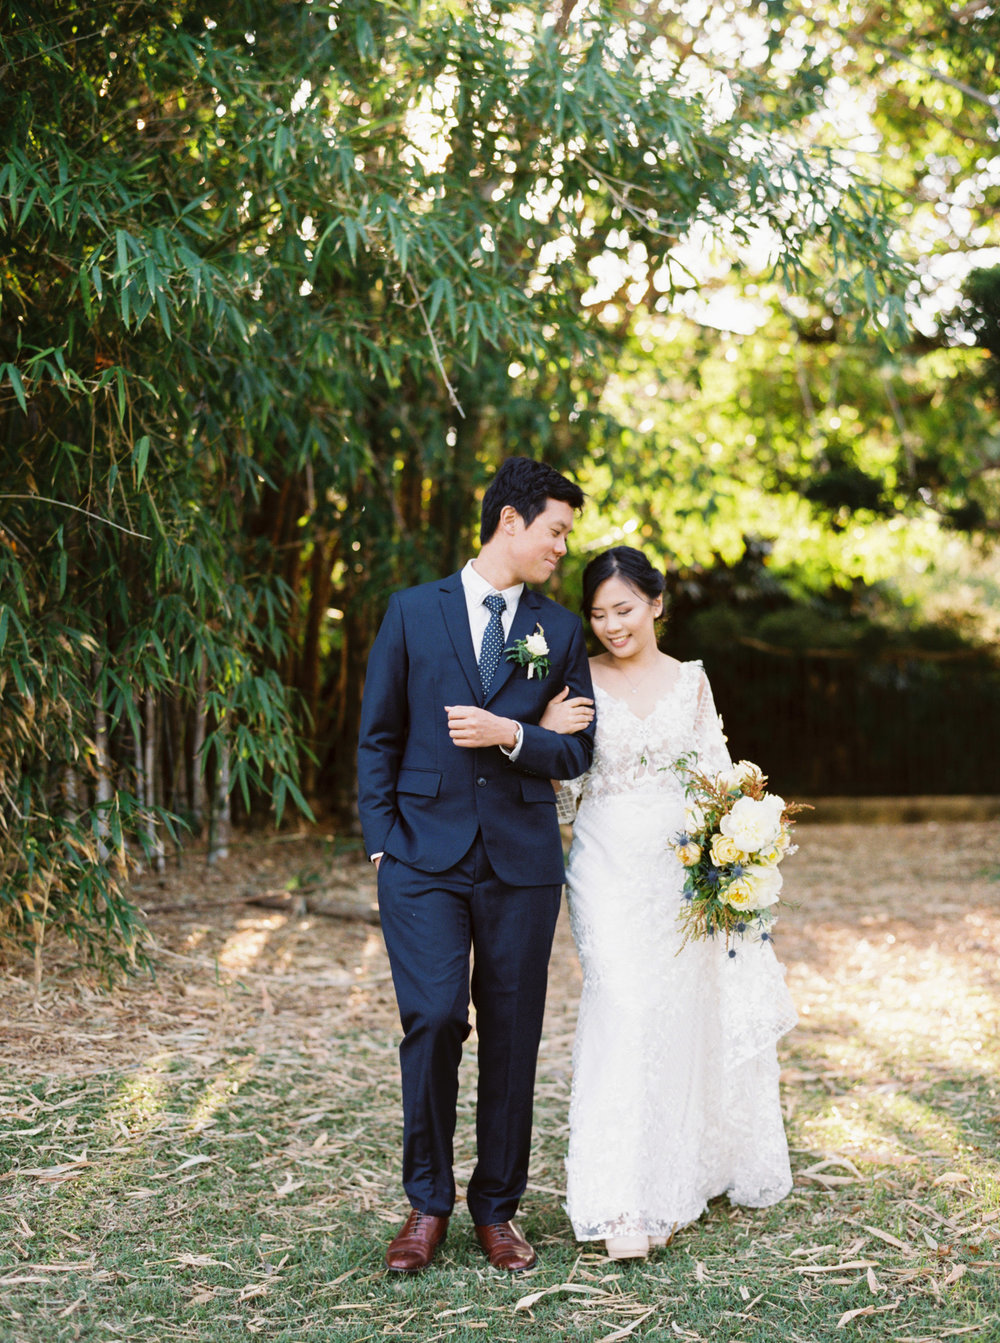 00026- Australia Sydney Wedding Photographer Sheri McMahon.jpg